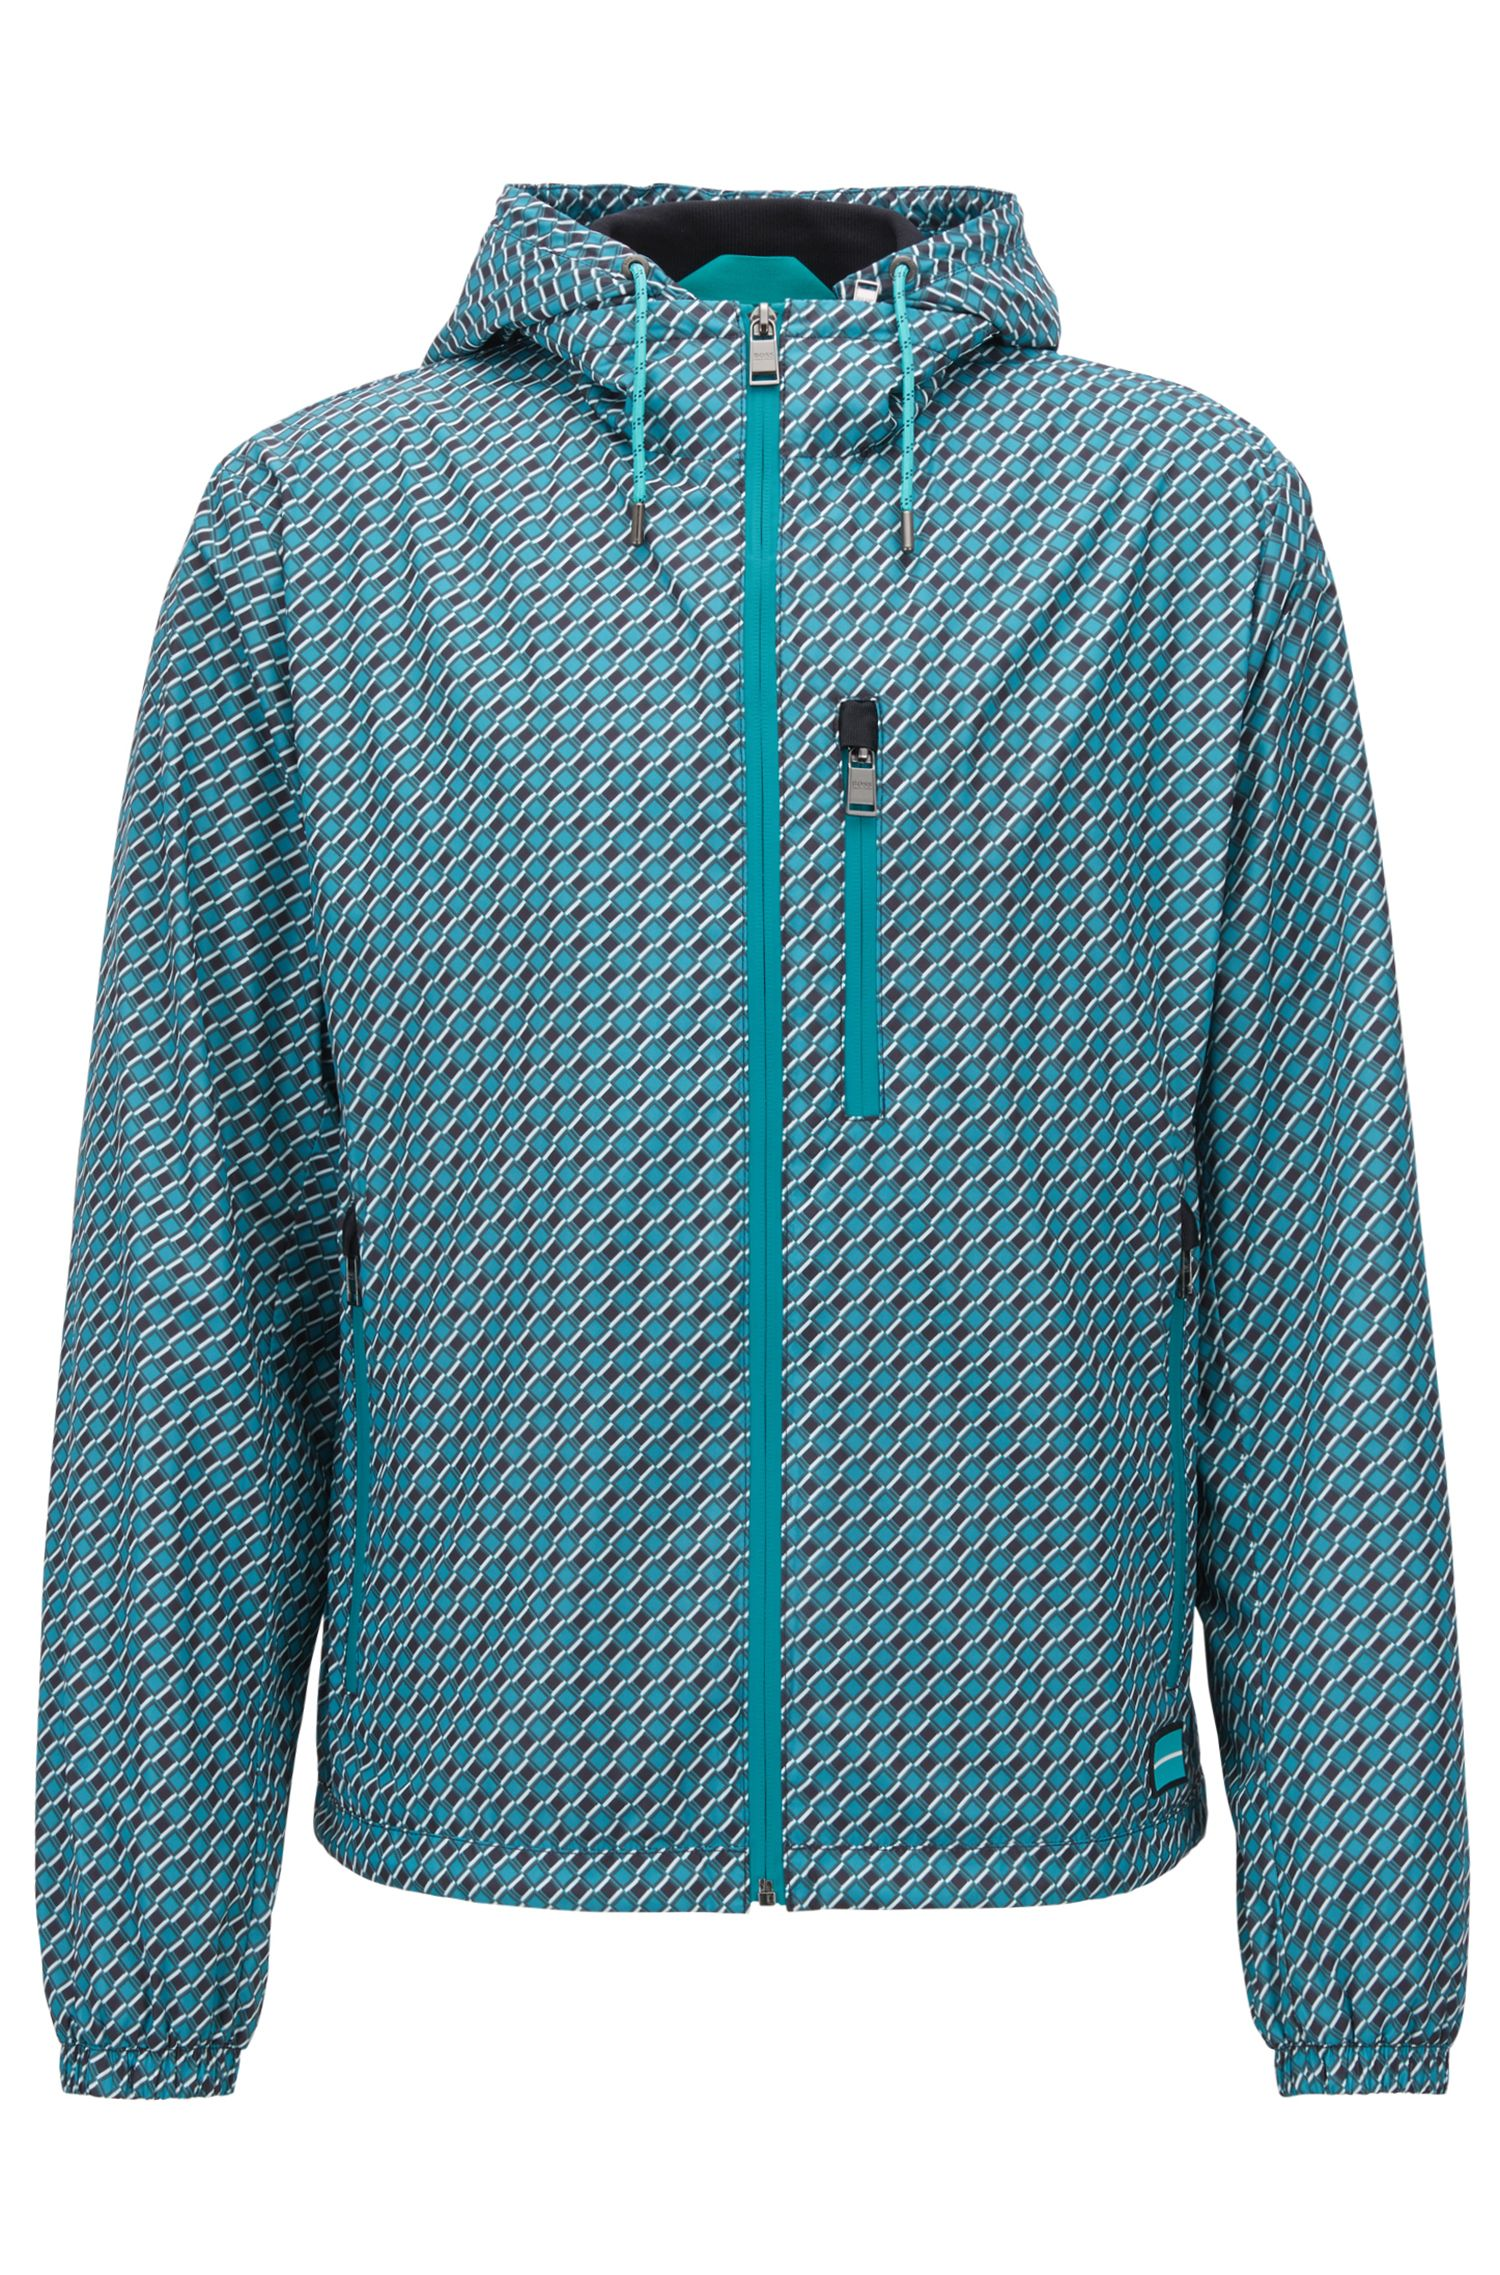 Windbreaker jacket in water-repellent fabric with geometric print, Green